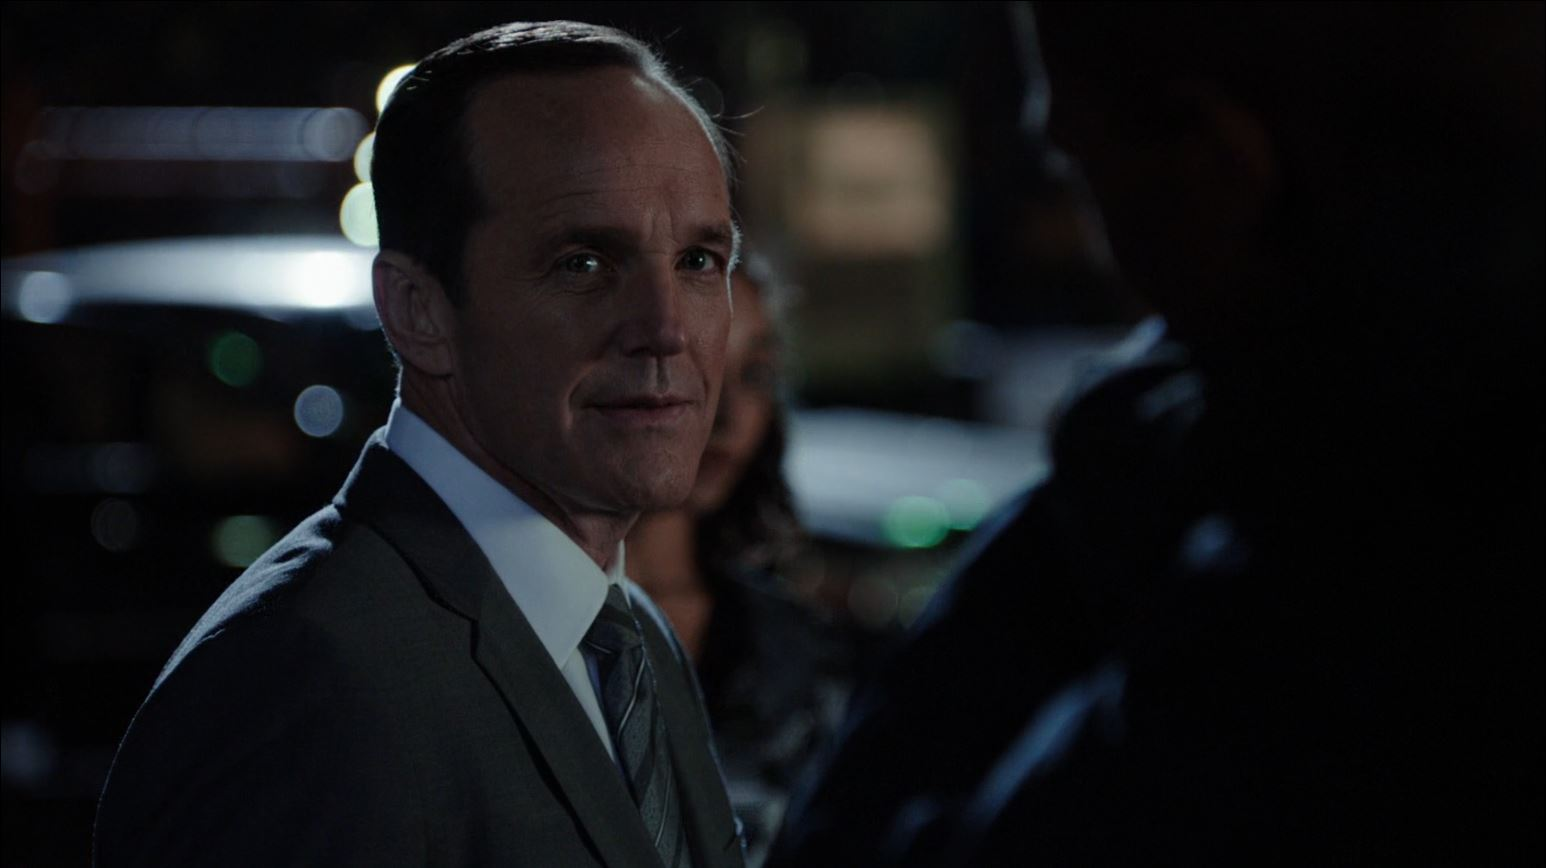 Agents of SHIELD - Clark Gregg as agent Coulson being captured by Centipede